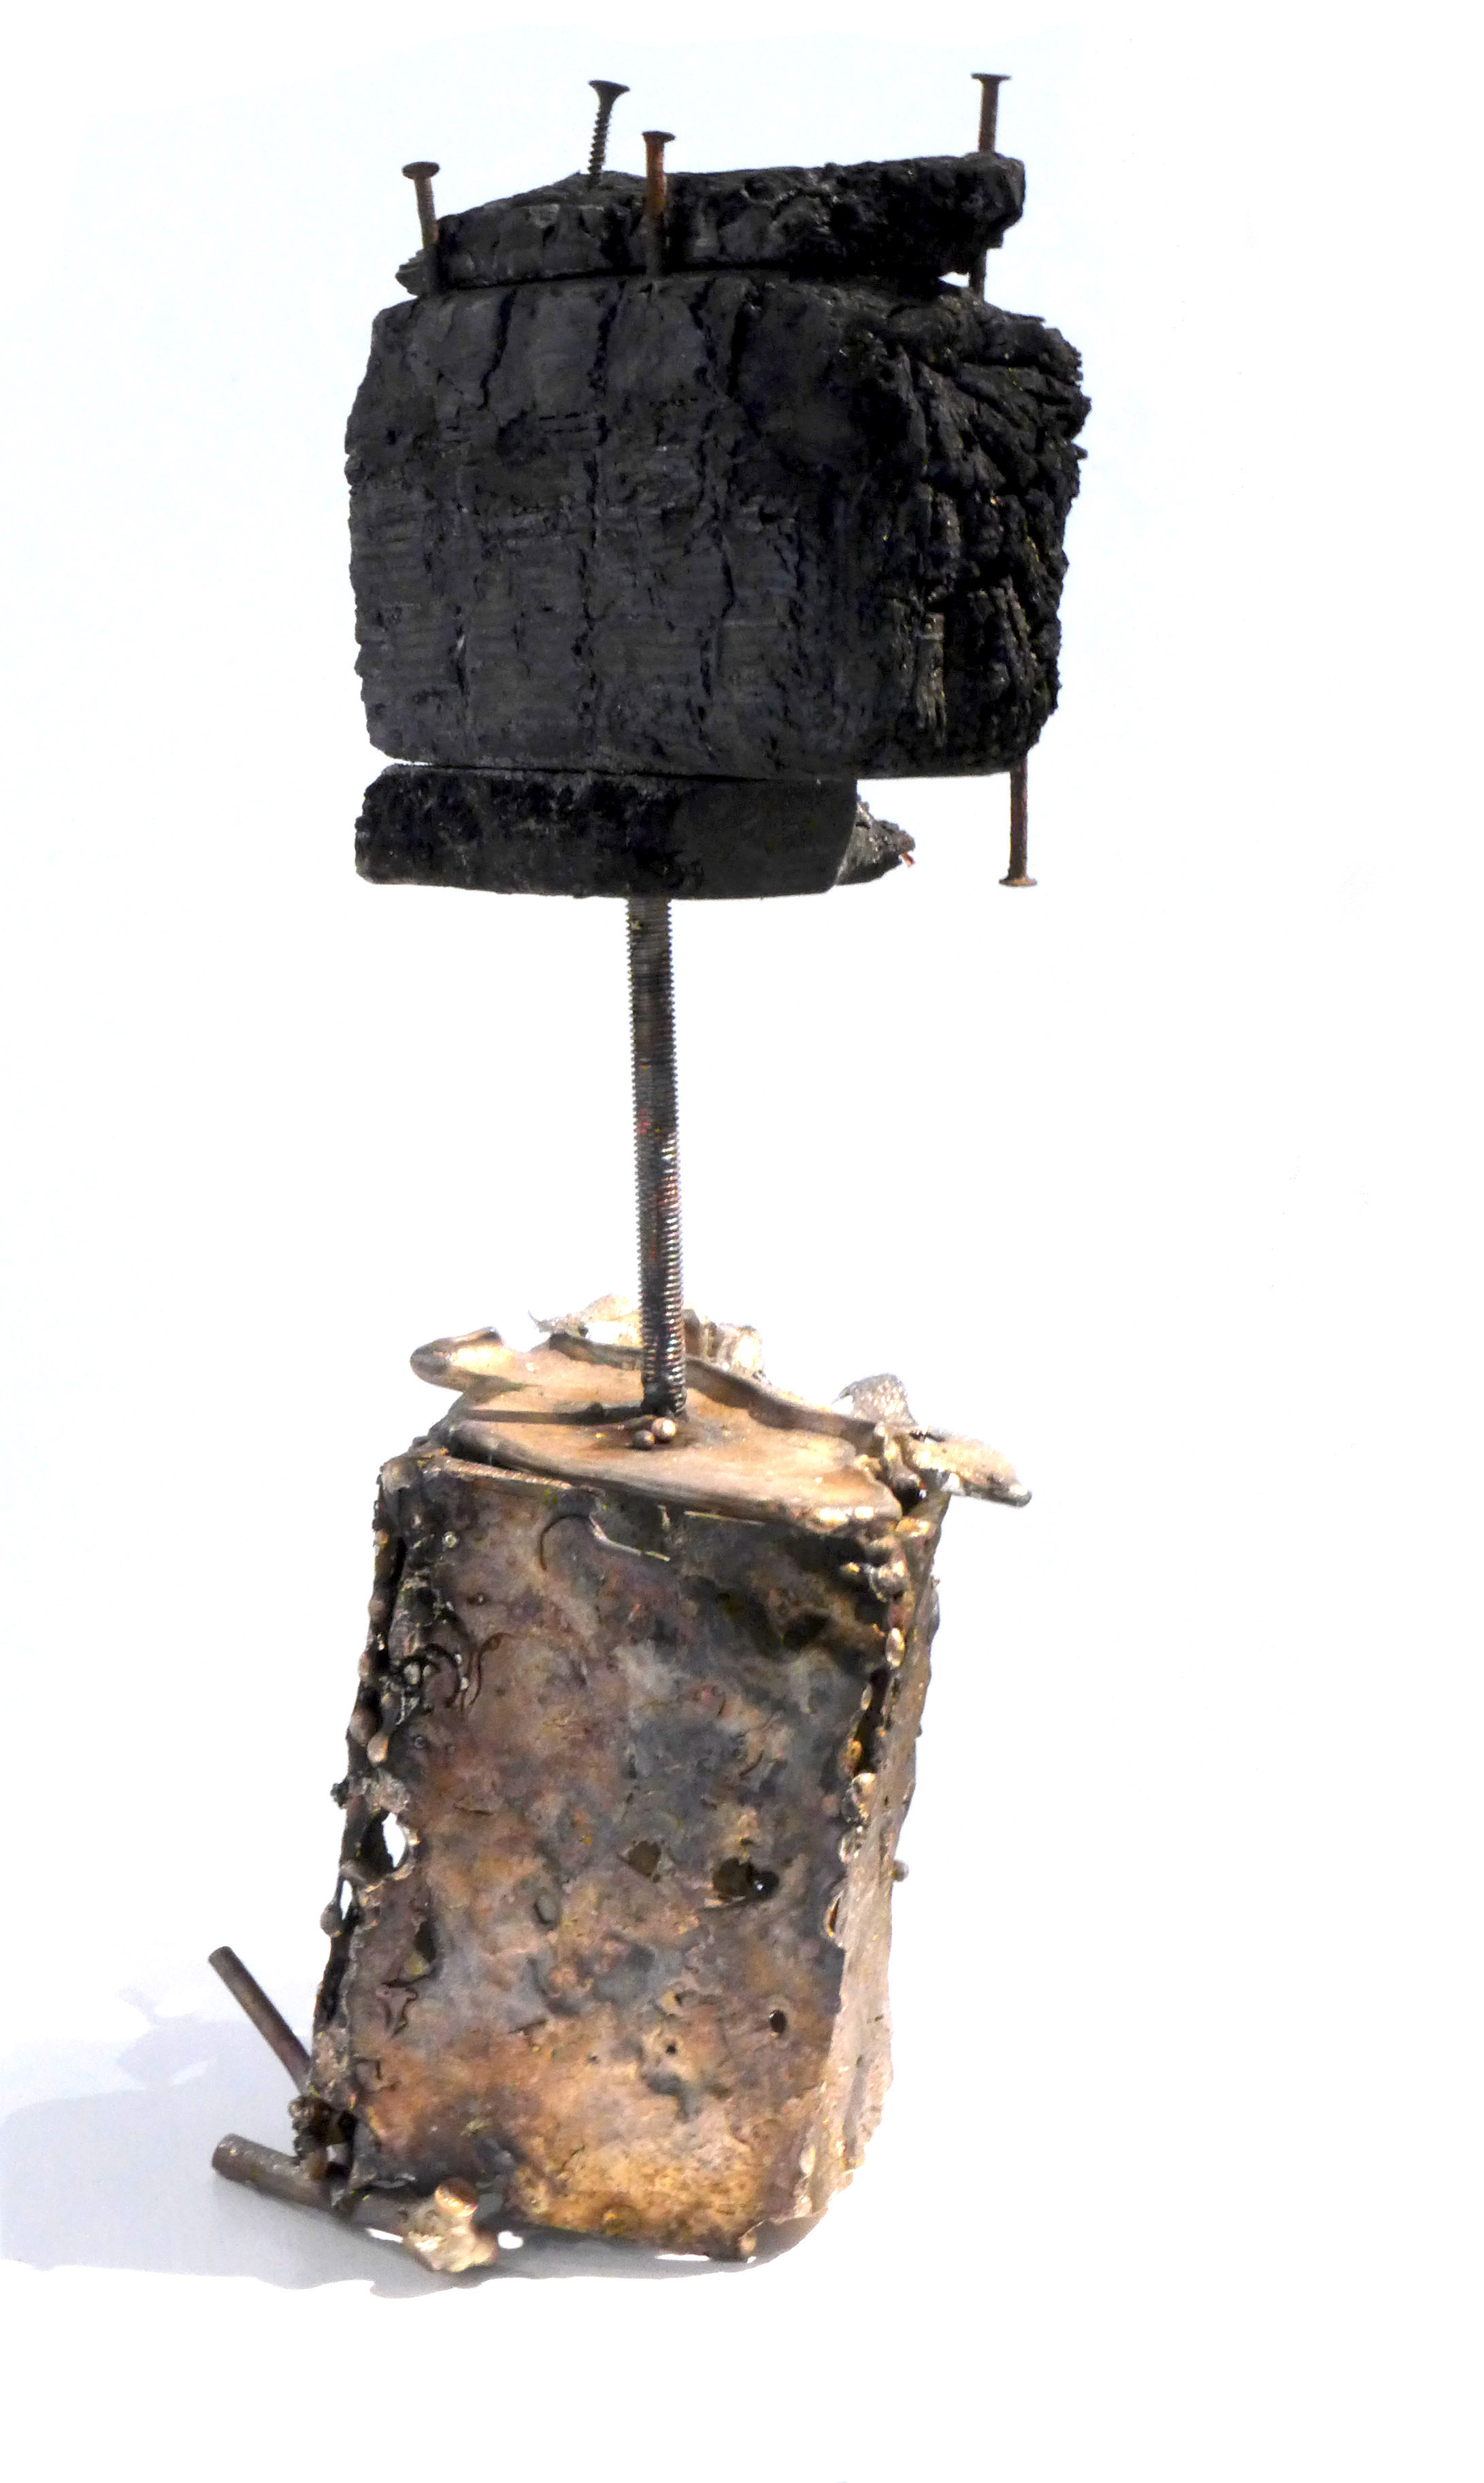 'REMNANT OF DREAMS' (material: bronze and charred Euro pallet)